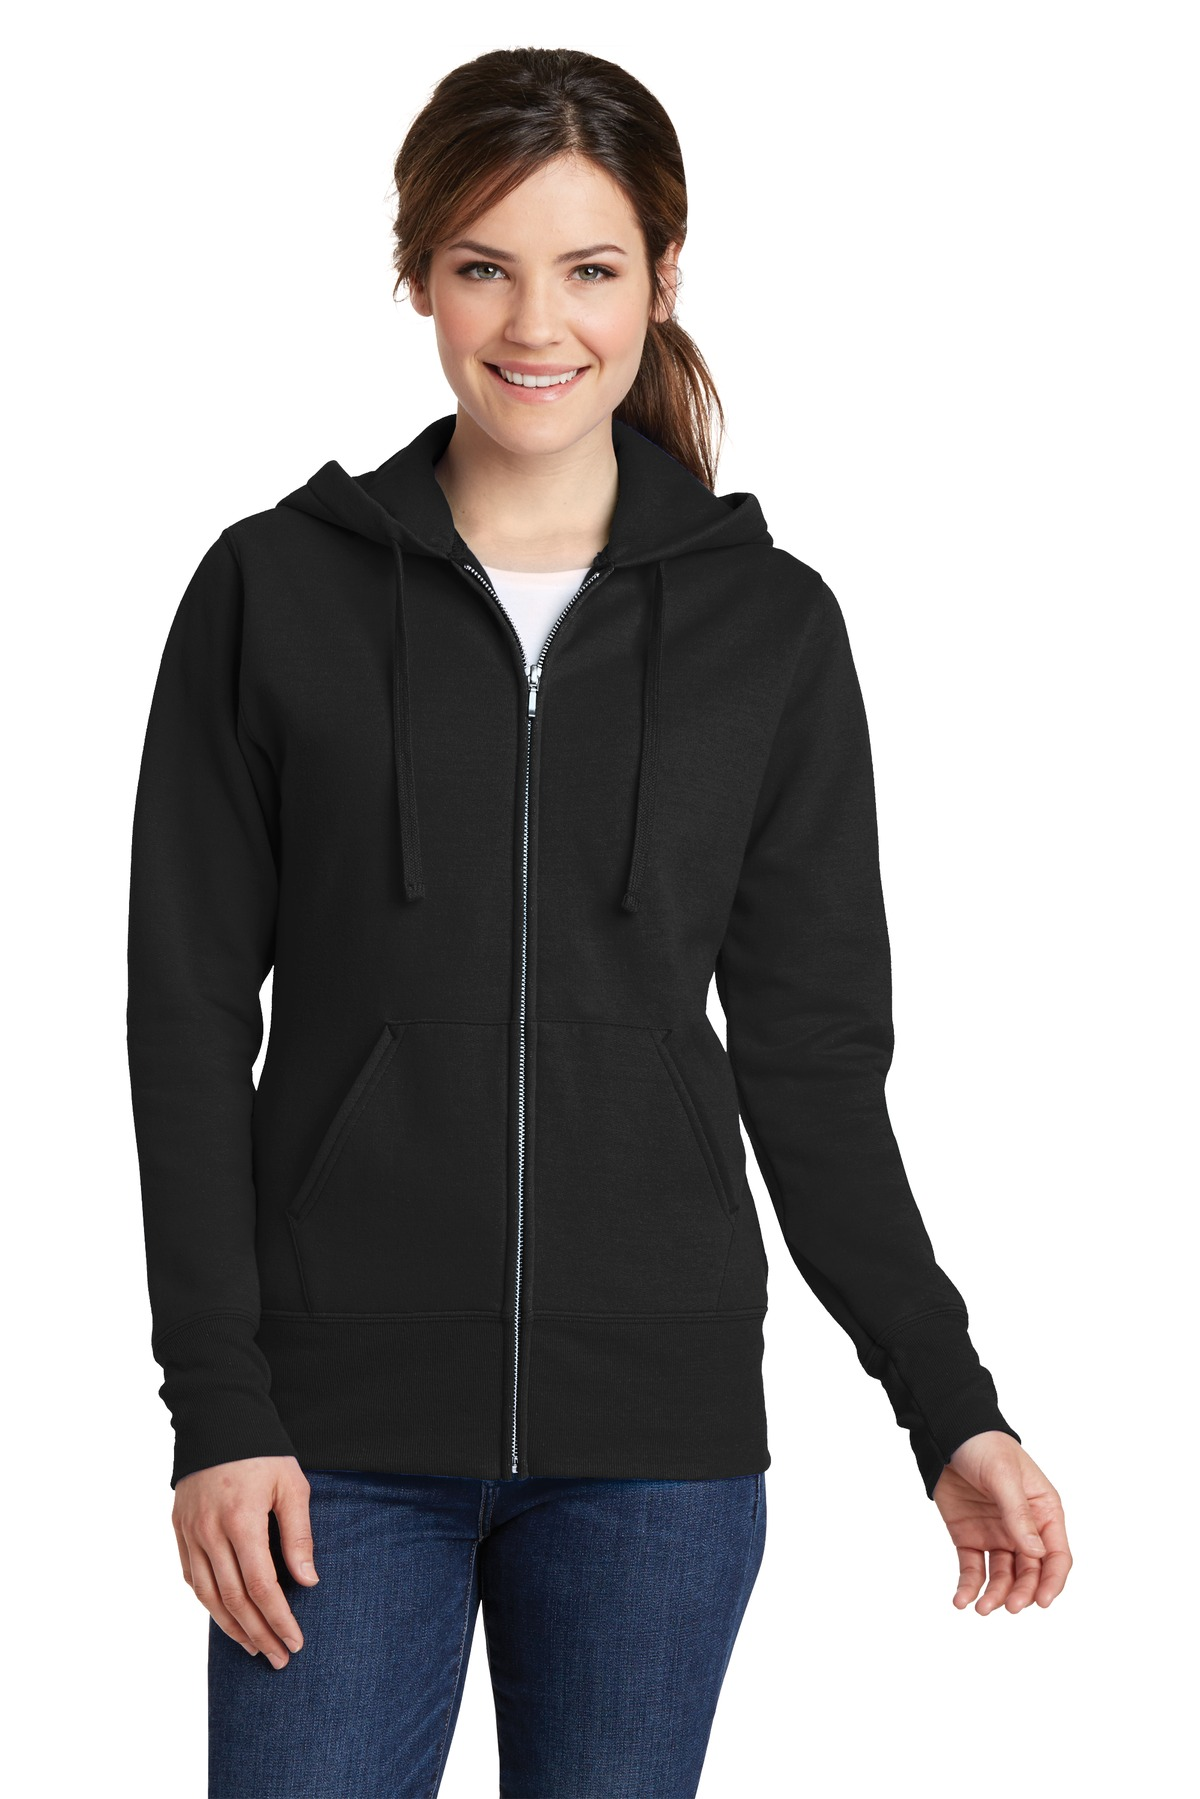 Port & Company ®  Ladies Core Fleece Full-Zip Hooded Sweatshirt. LPC78ZH - Jet Black